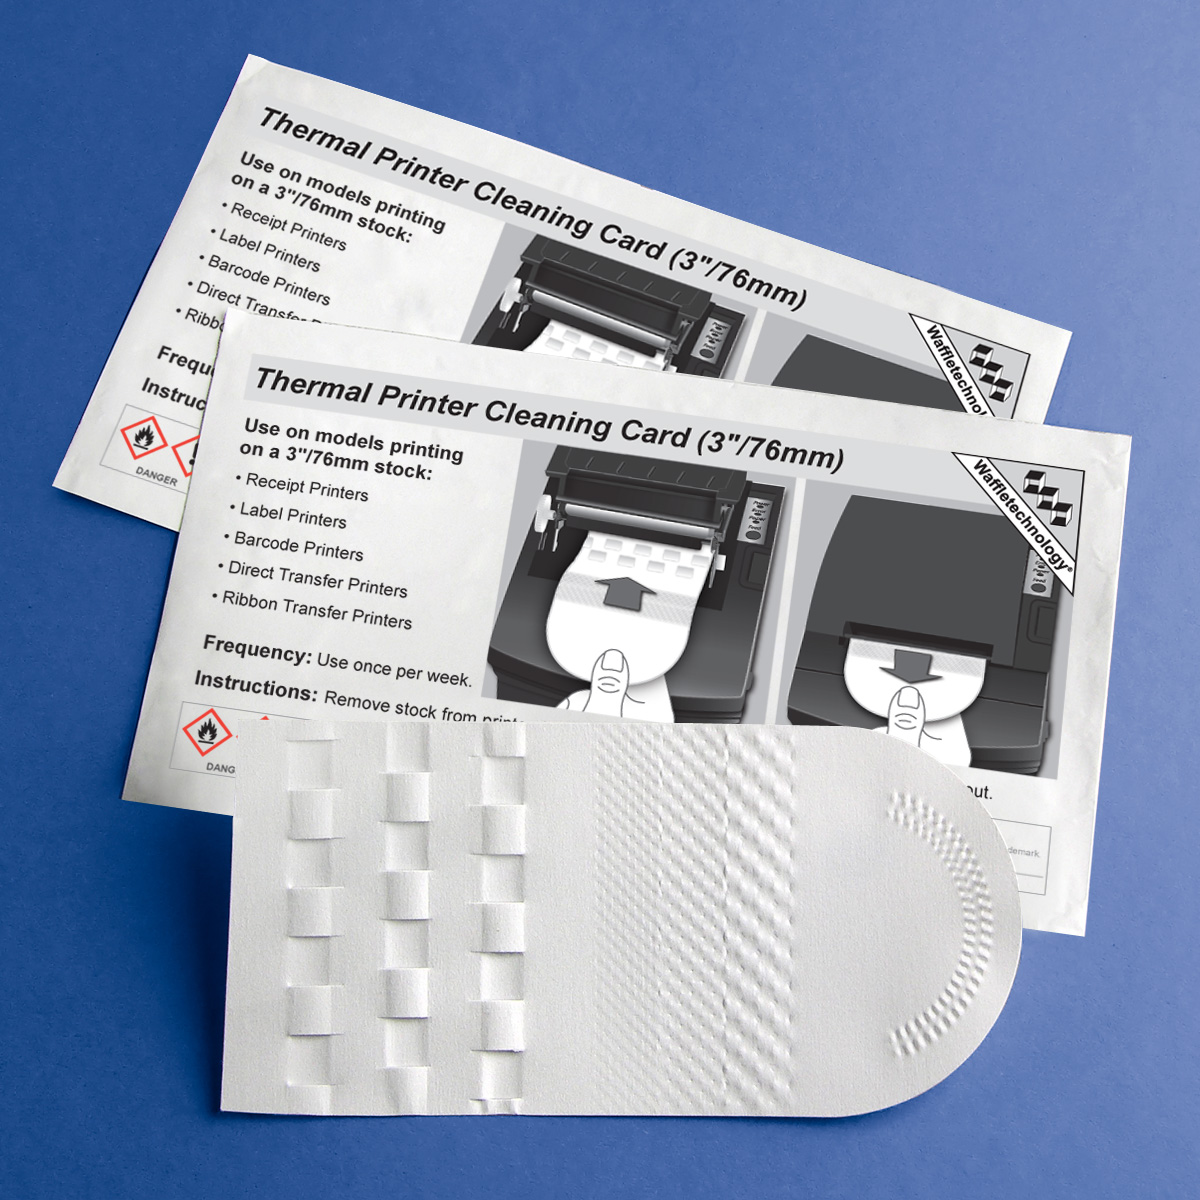 Thermal Printer Cleaning Card featuring Waffletechnology® (3in/76mm)